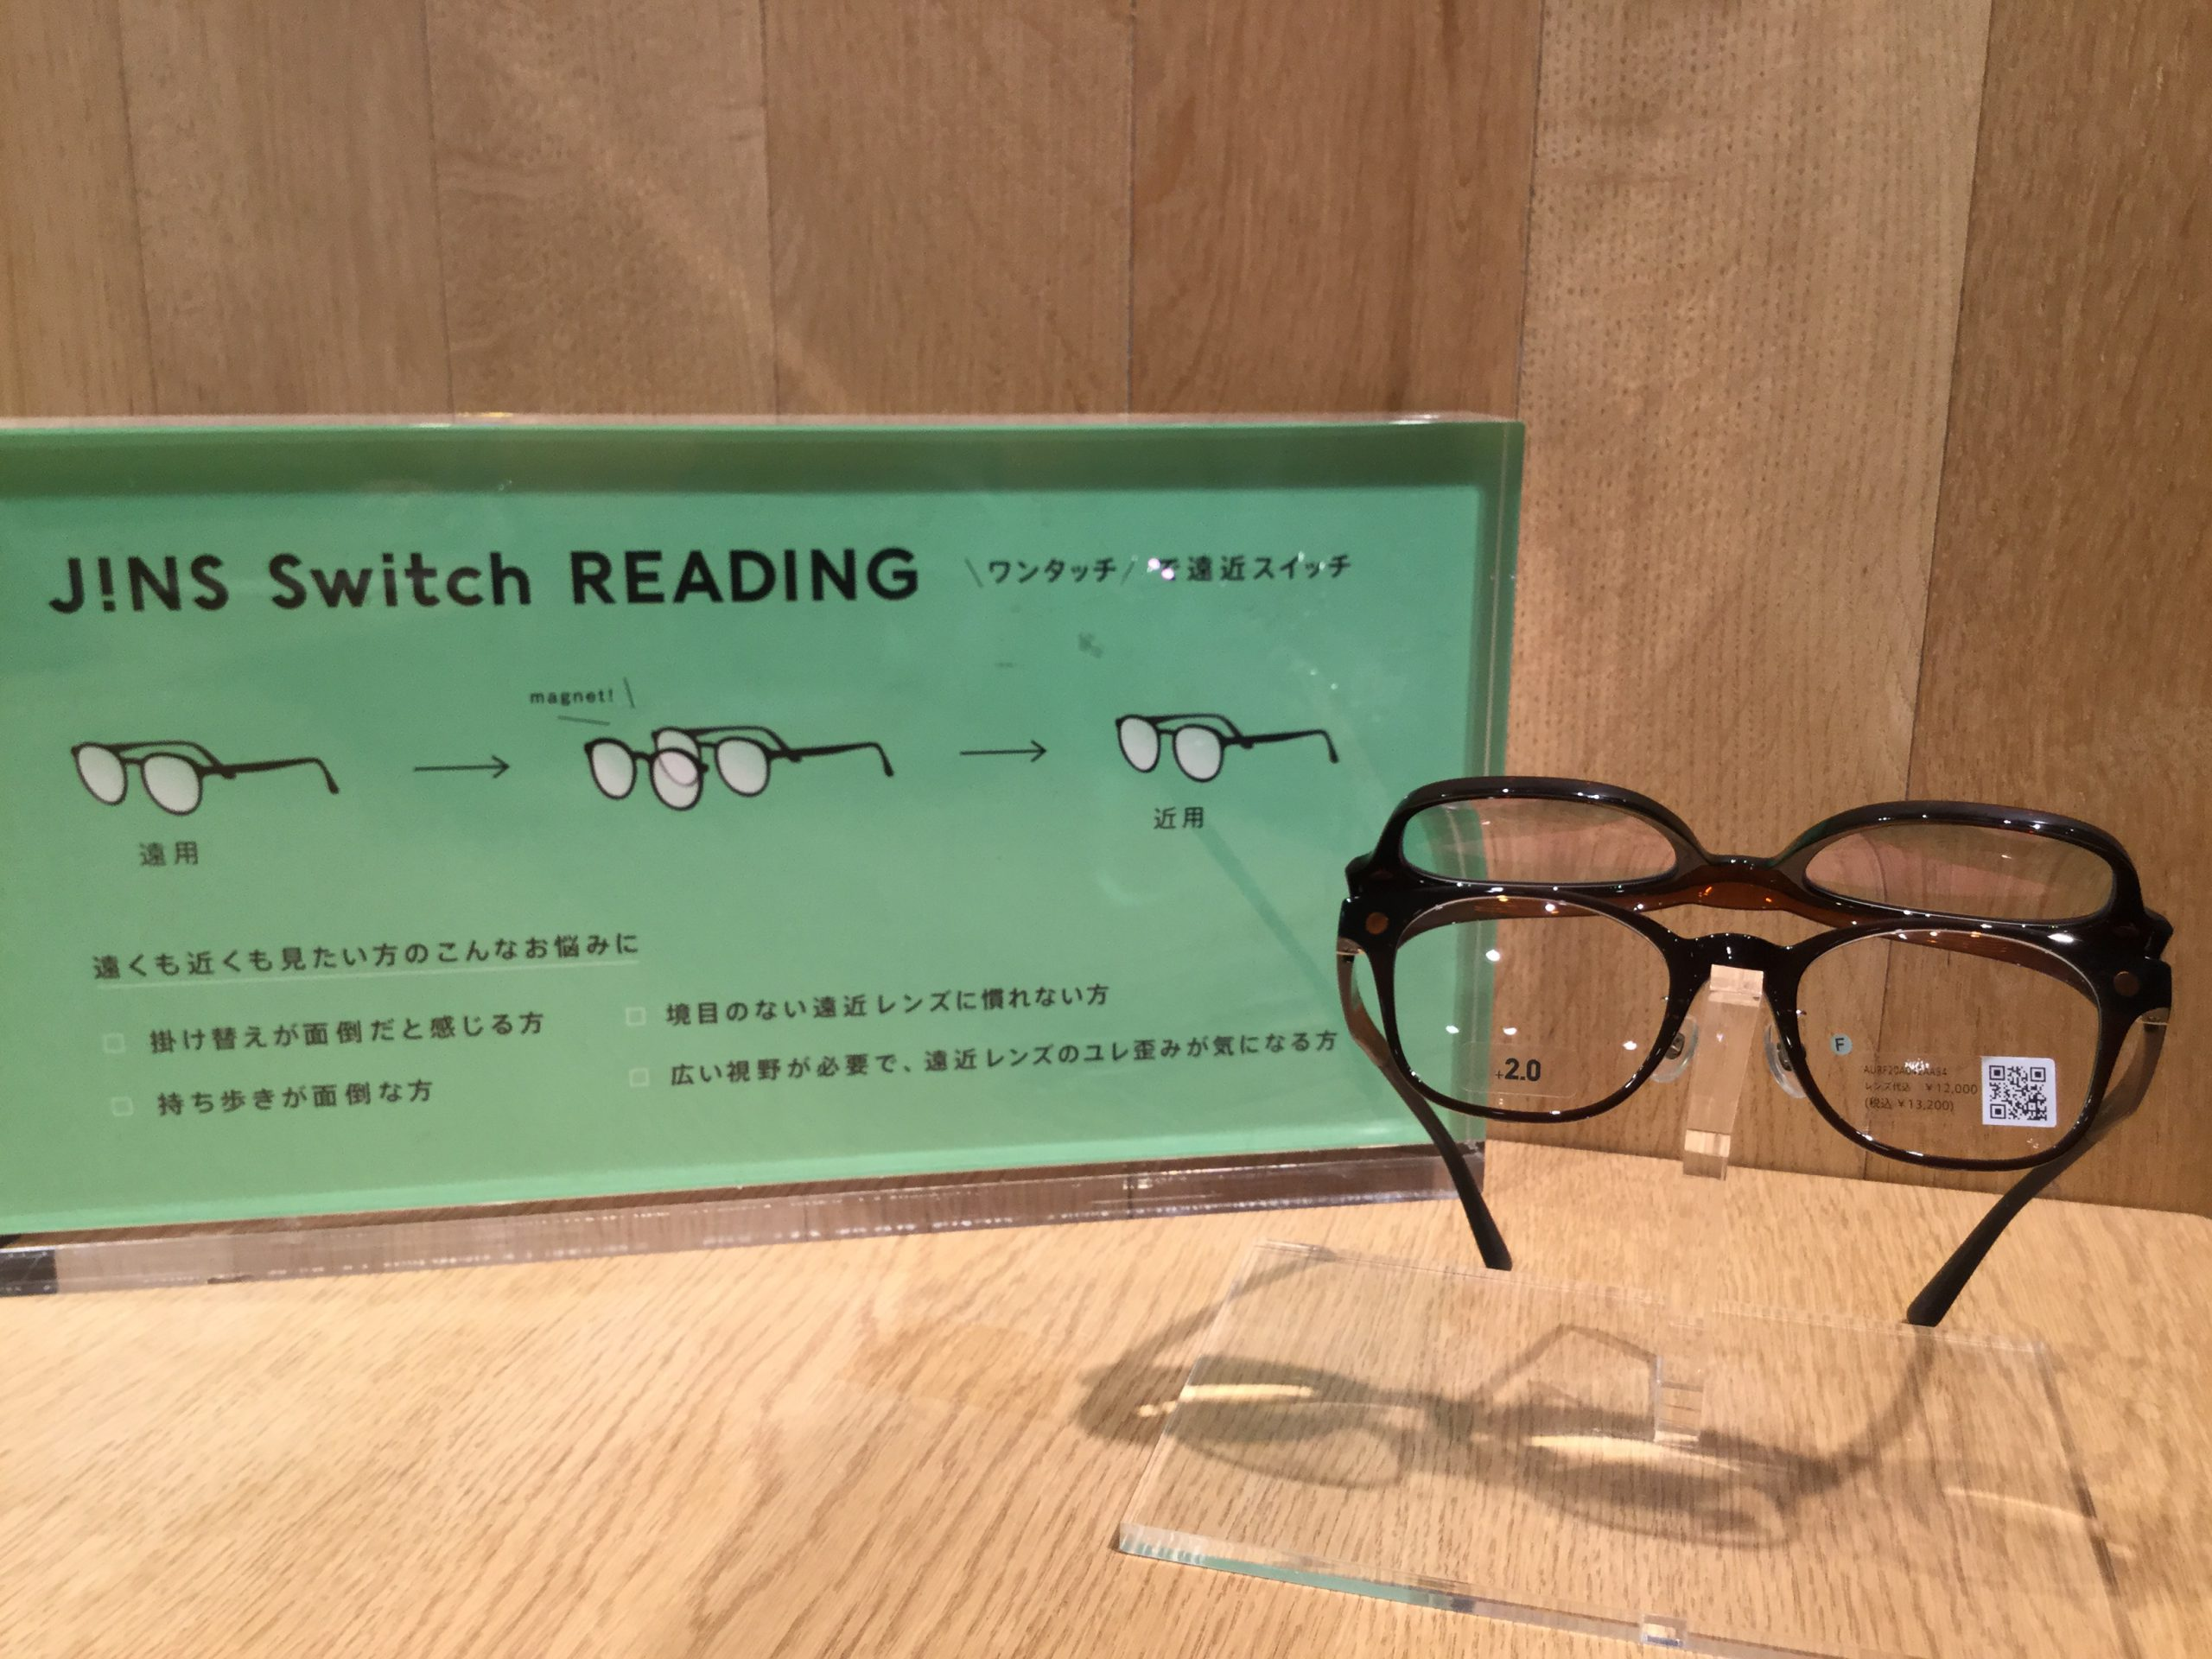 SWITCH READING Flip up 発売中!